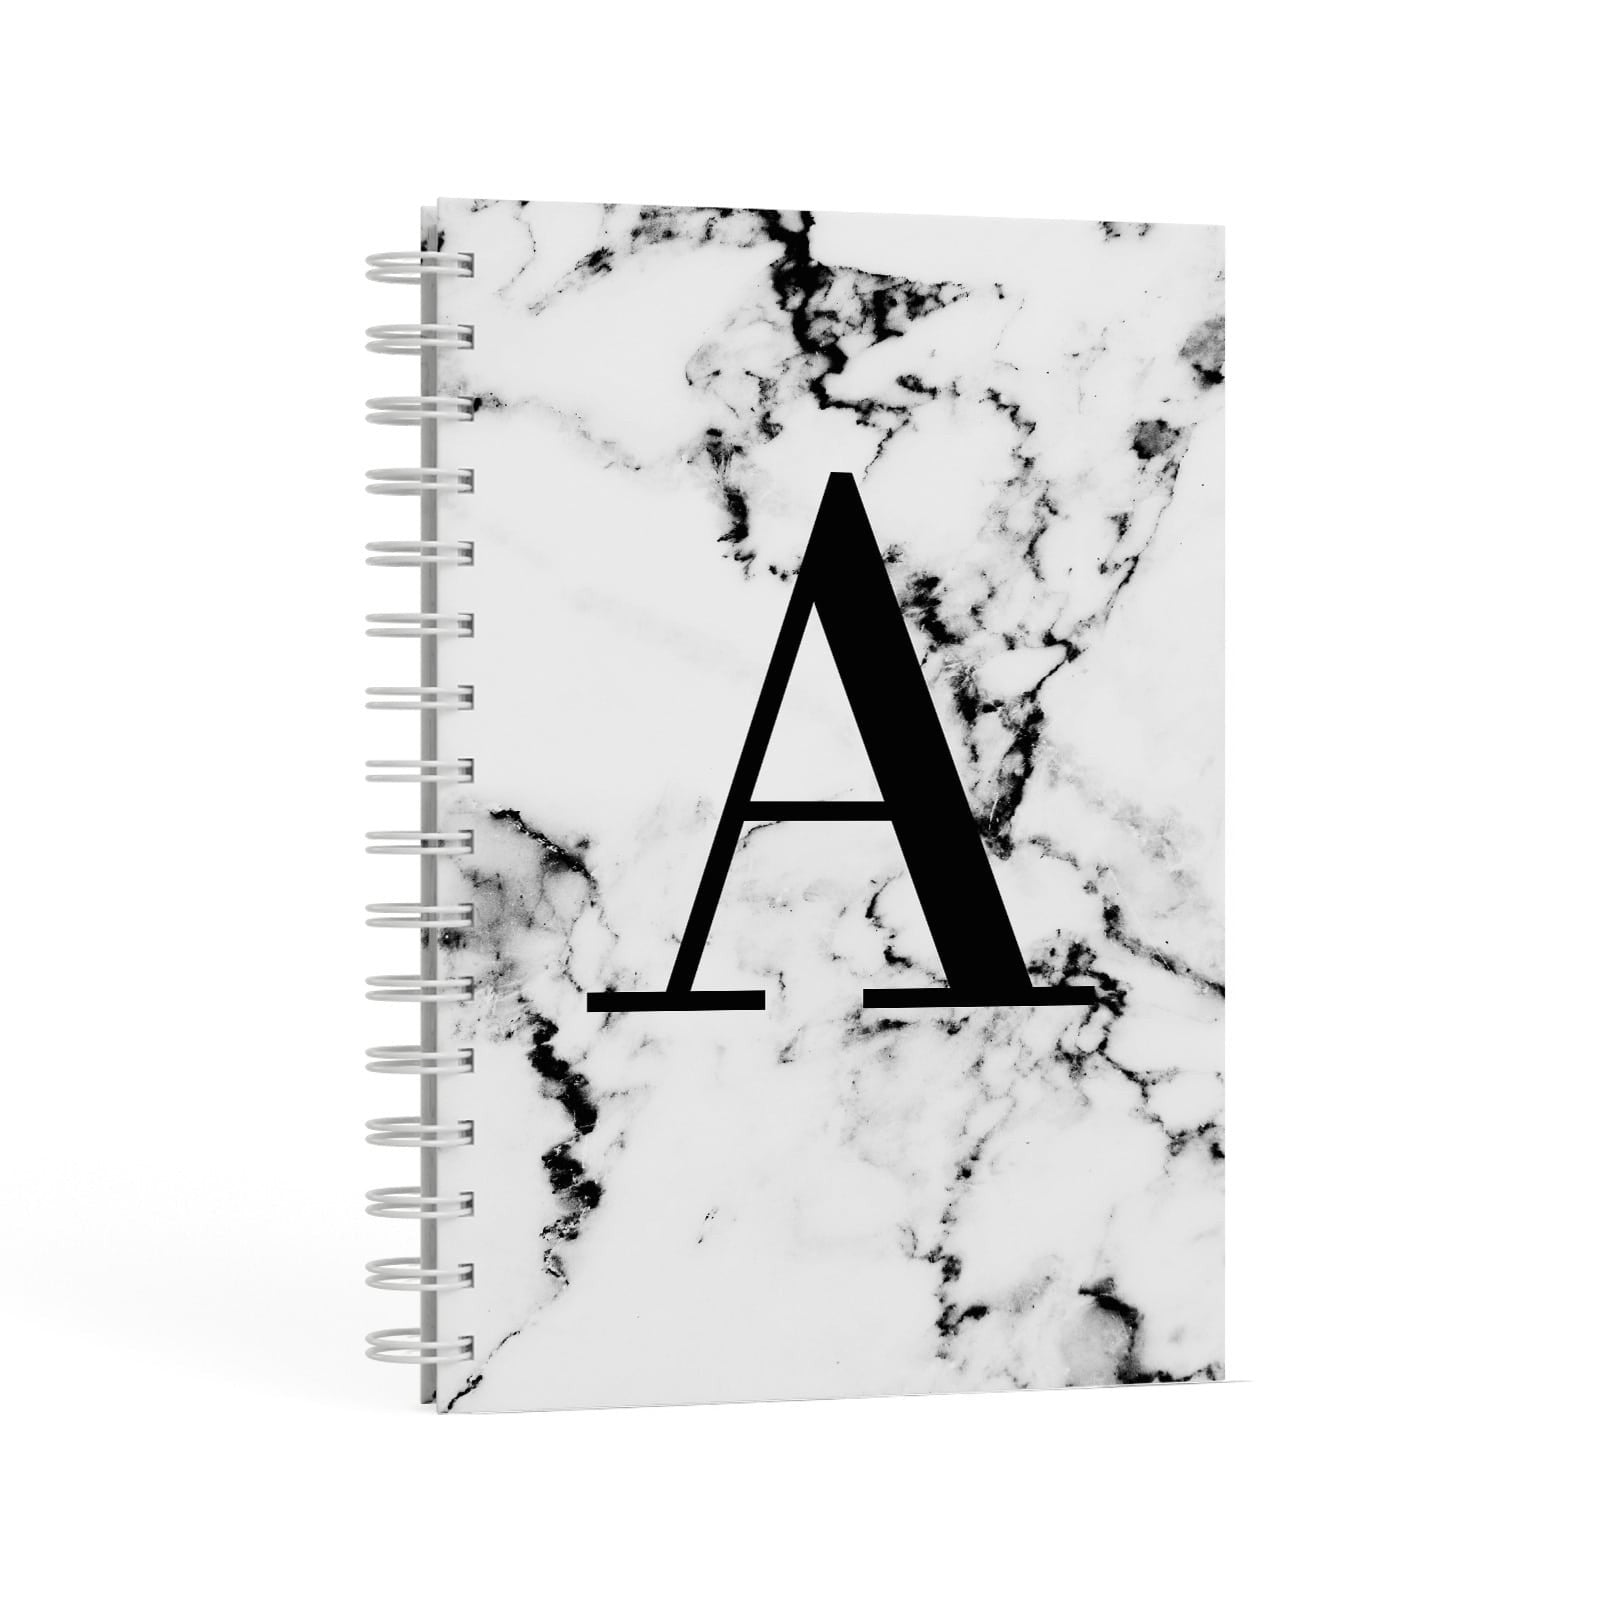 Marble Black Initial Personalised A5 Hardcover Notebook Second Side View